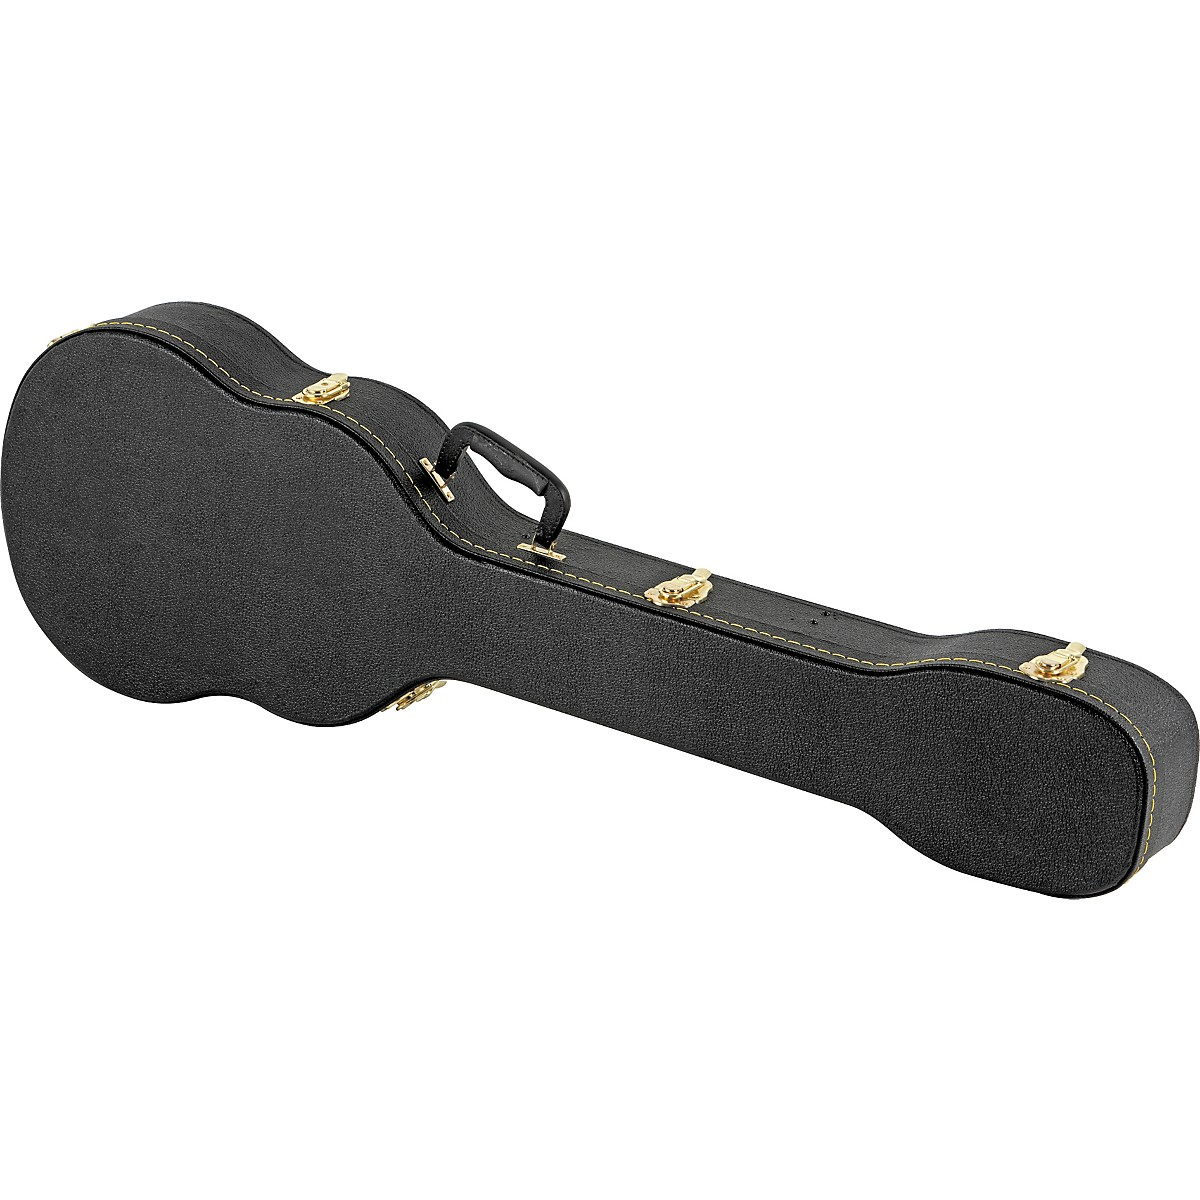 Musician's Gear Electric Bass Case Violin Shaped